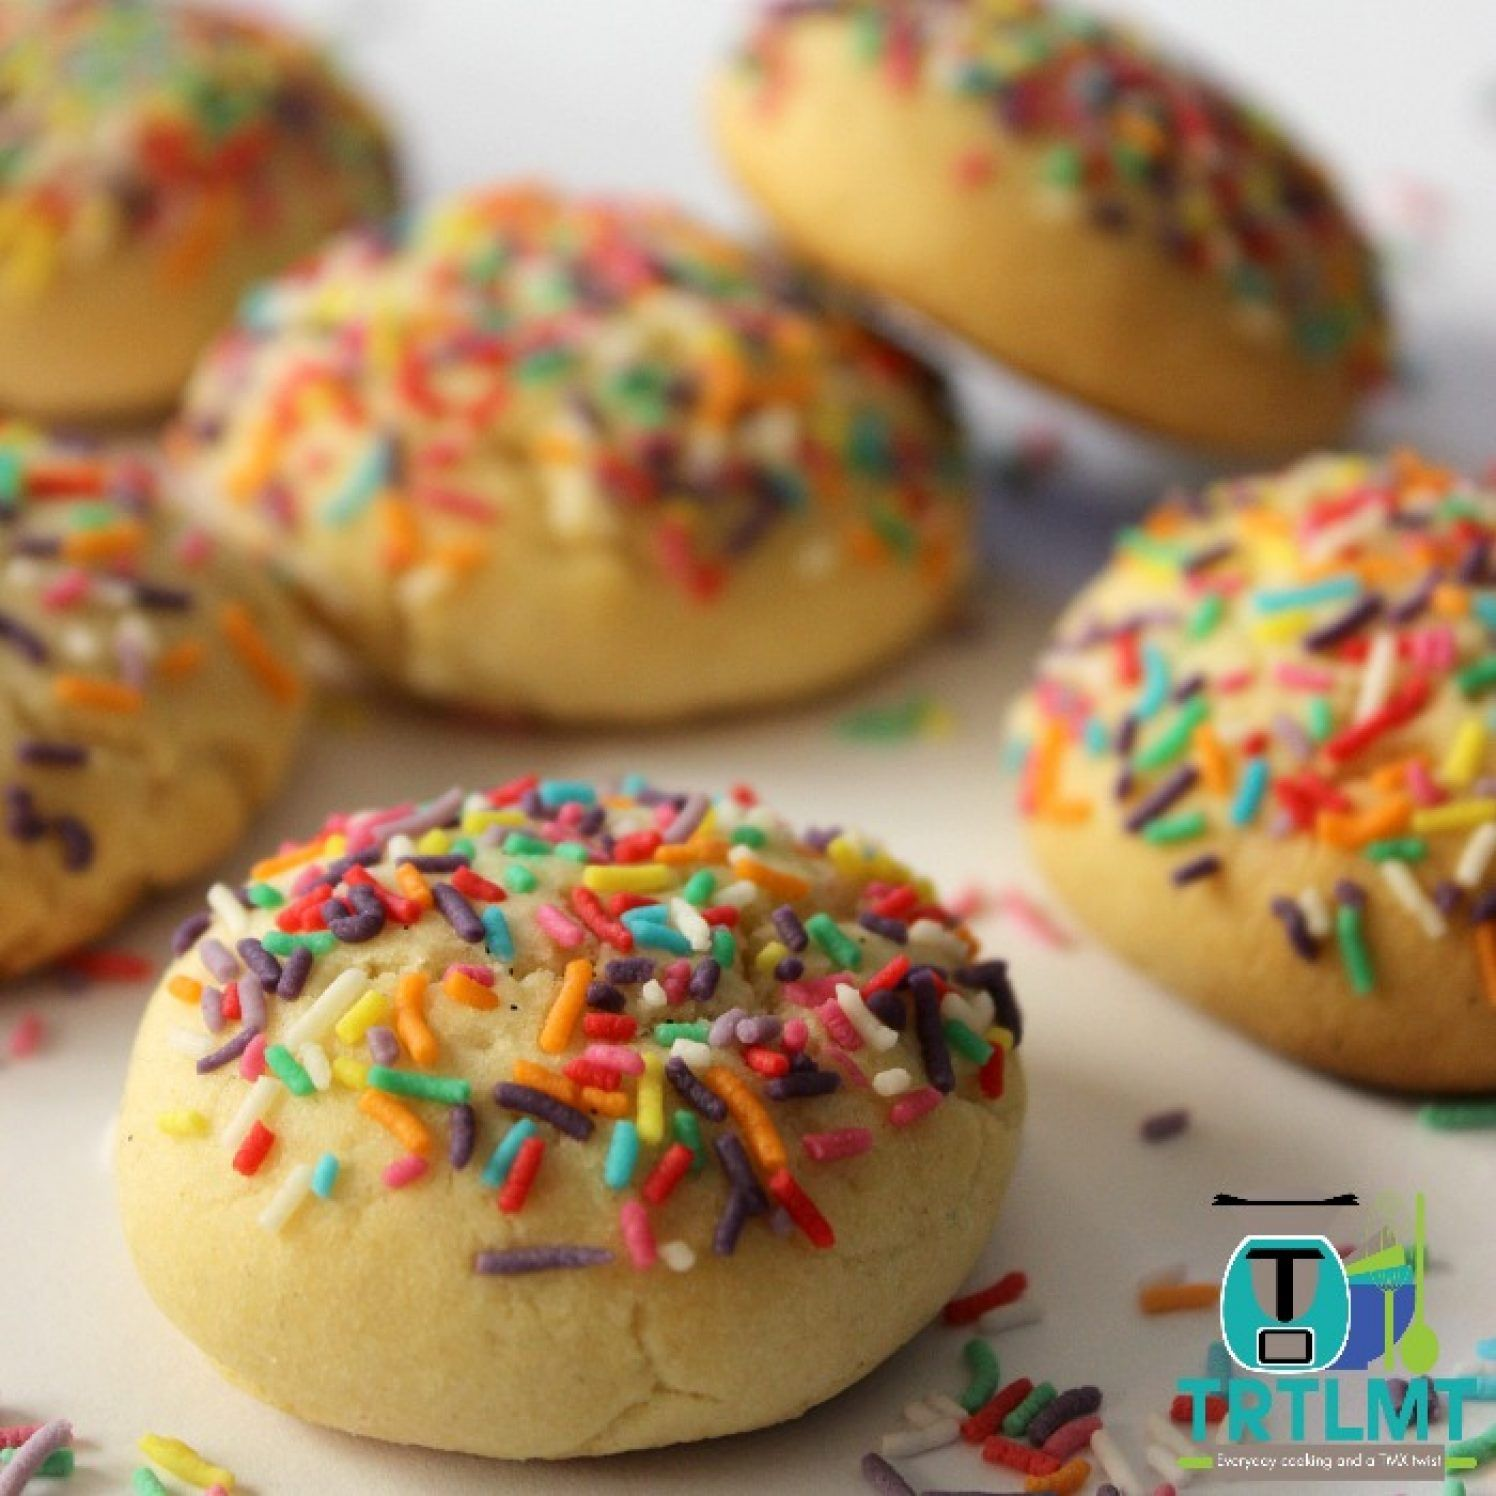 Condensed Milk Biscuits The Road To Loving My Thermo Mixer Recipe Condensed Milk Biscuits Milk Biscuits Milk Recipes